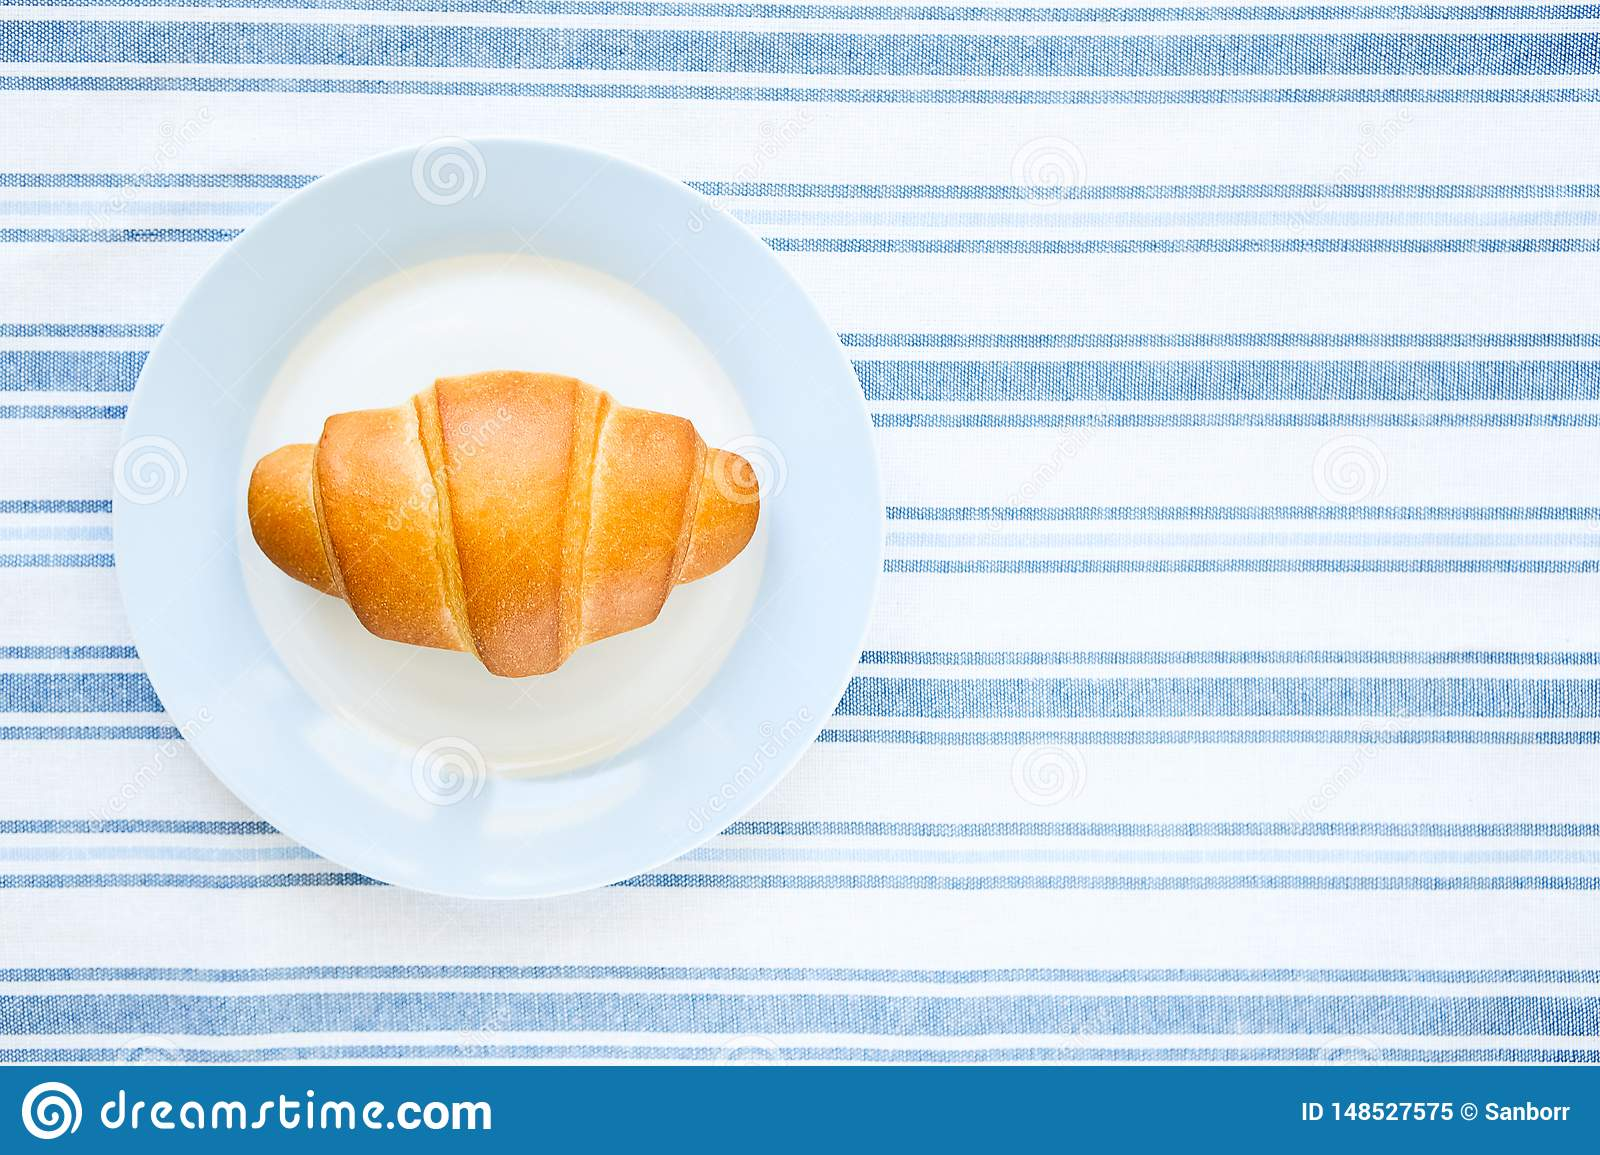 Ceramic plate with freshly baked bakery, croissant on a striped linen towel. The concept of organic, farm food. The view from the